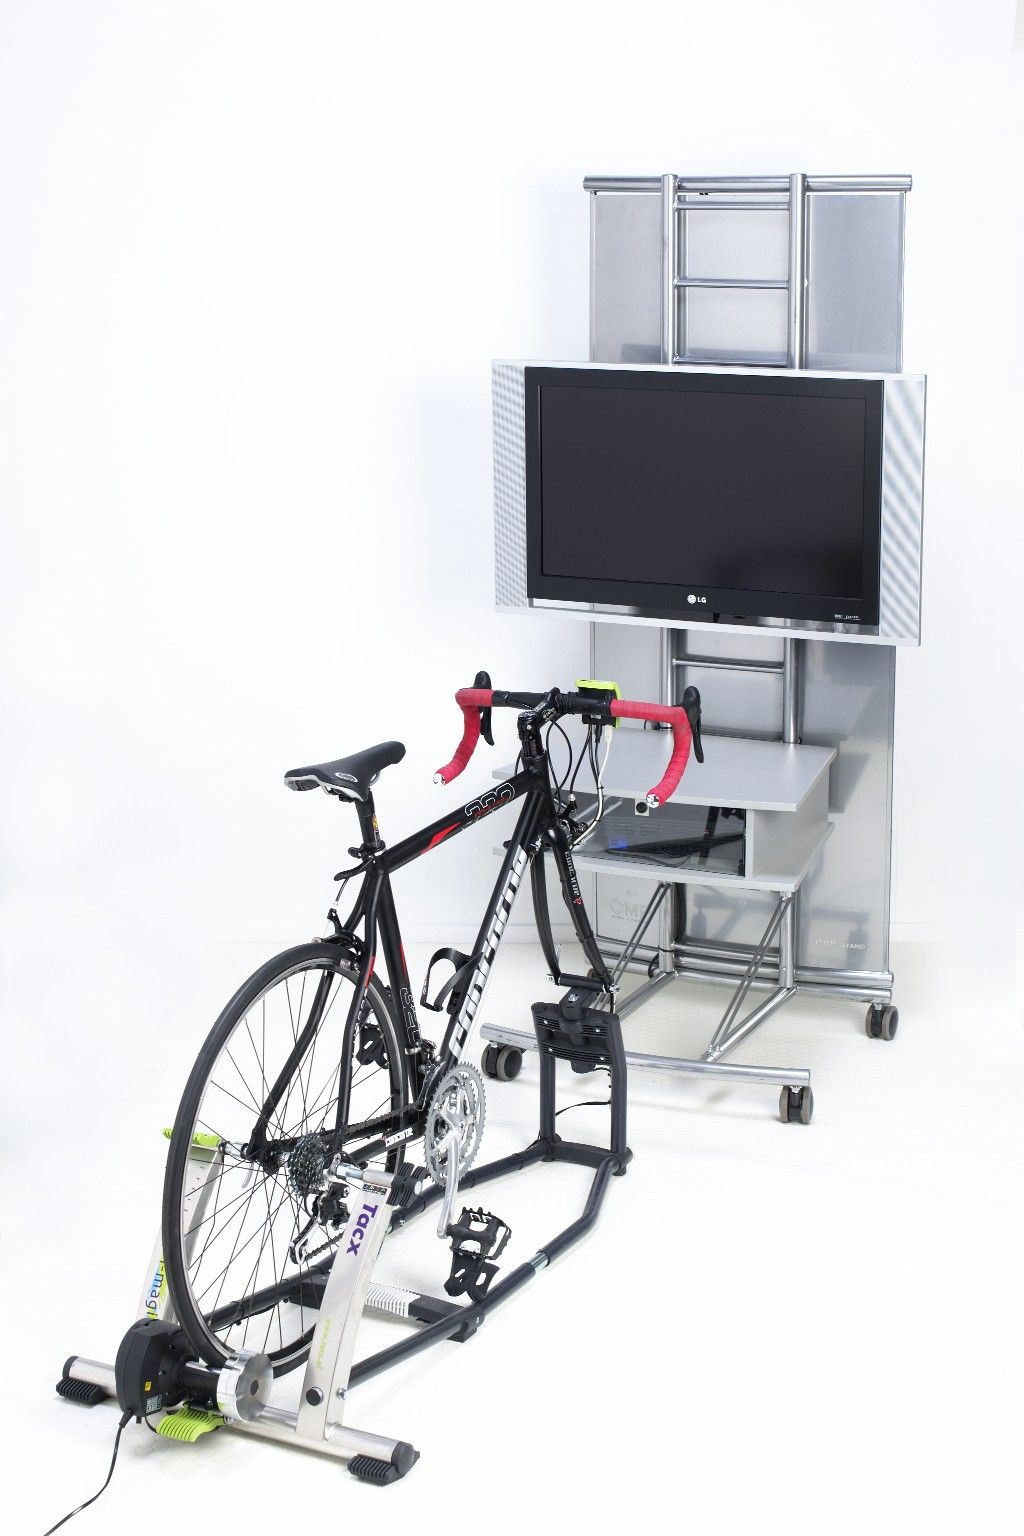 Virtual Cycling simulator with 3 modes of use: virtual